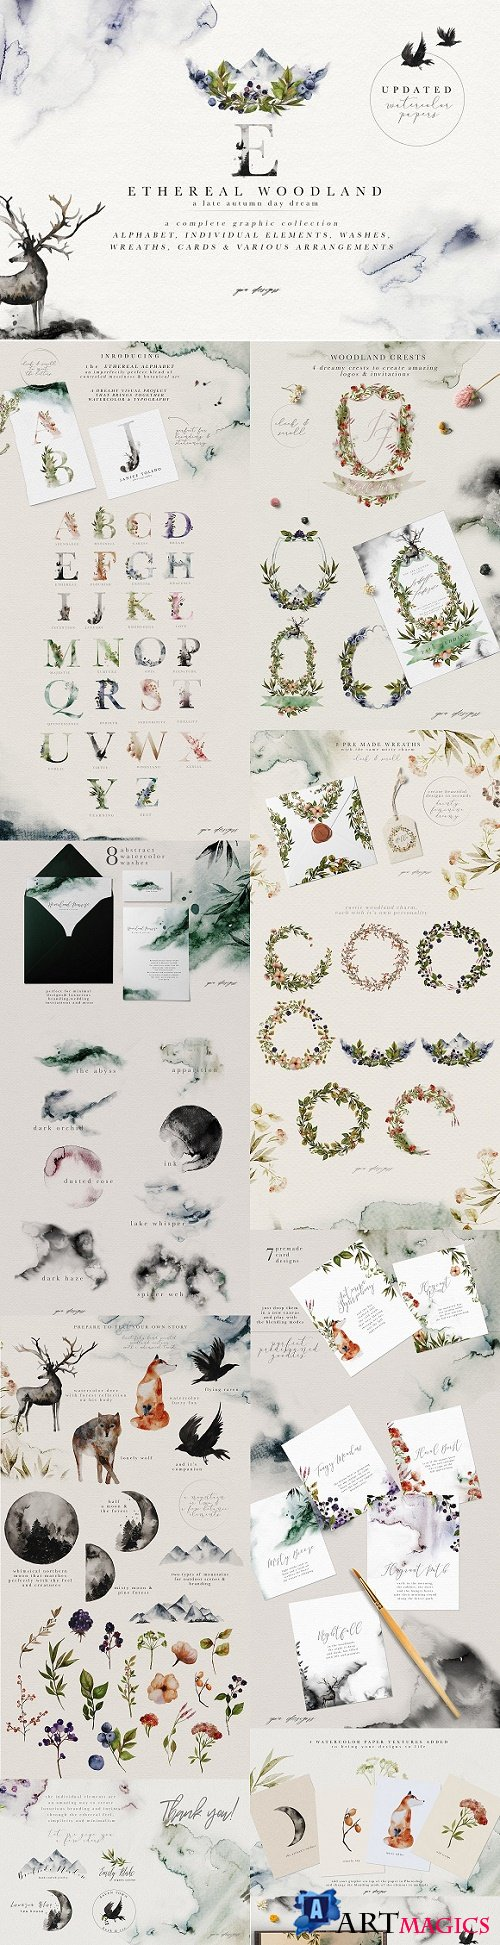 Ethereal Woodland - Graphic Set 1788677